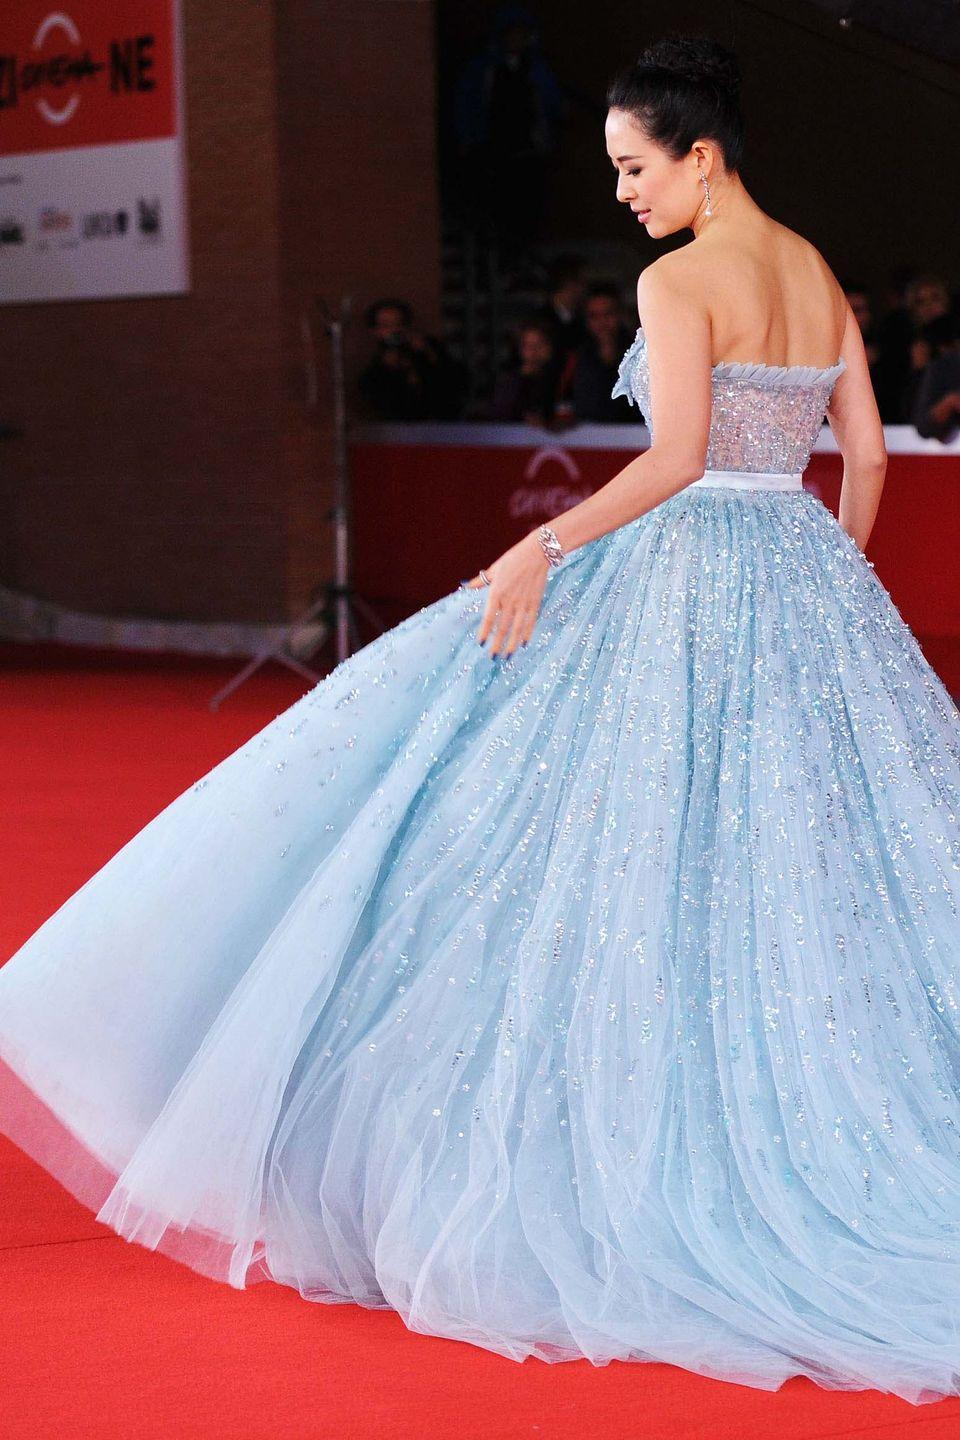 <p>Zhang Ziyi looked like a fairy-tale princess at the<em> Love for Life</em> premiere in Rome, wearing a sparkling blue gown from the Christian Dior Resort 2011 collection.</p>